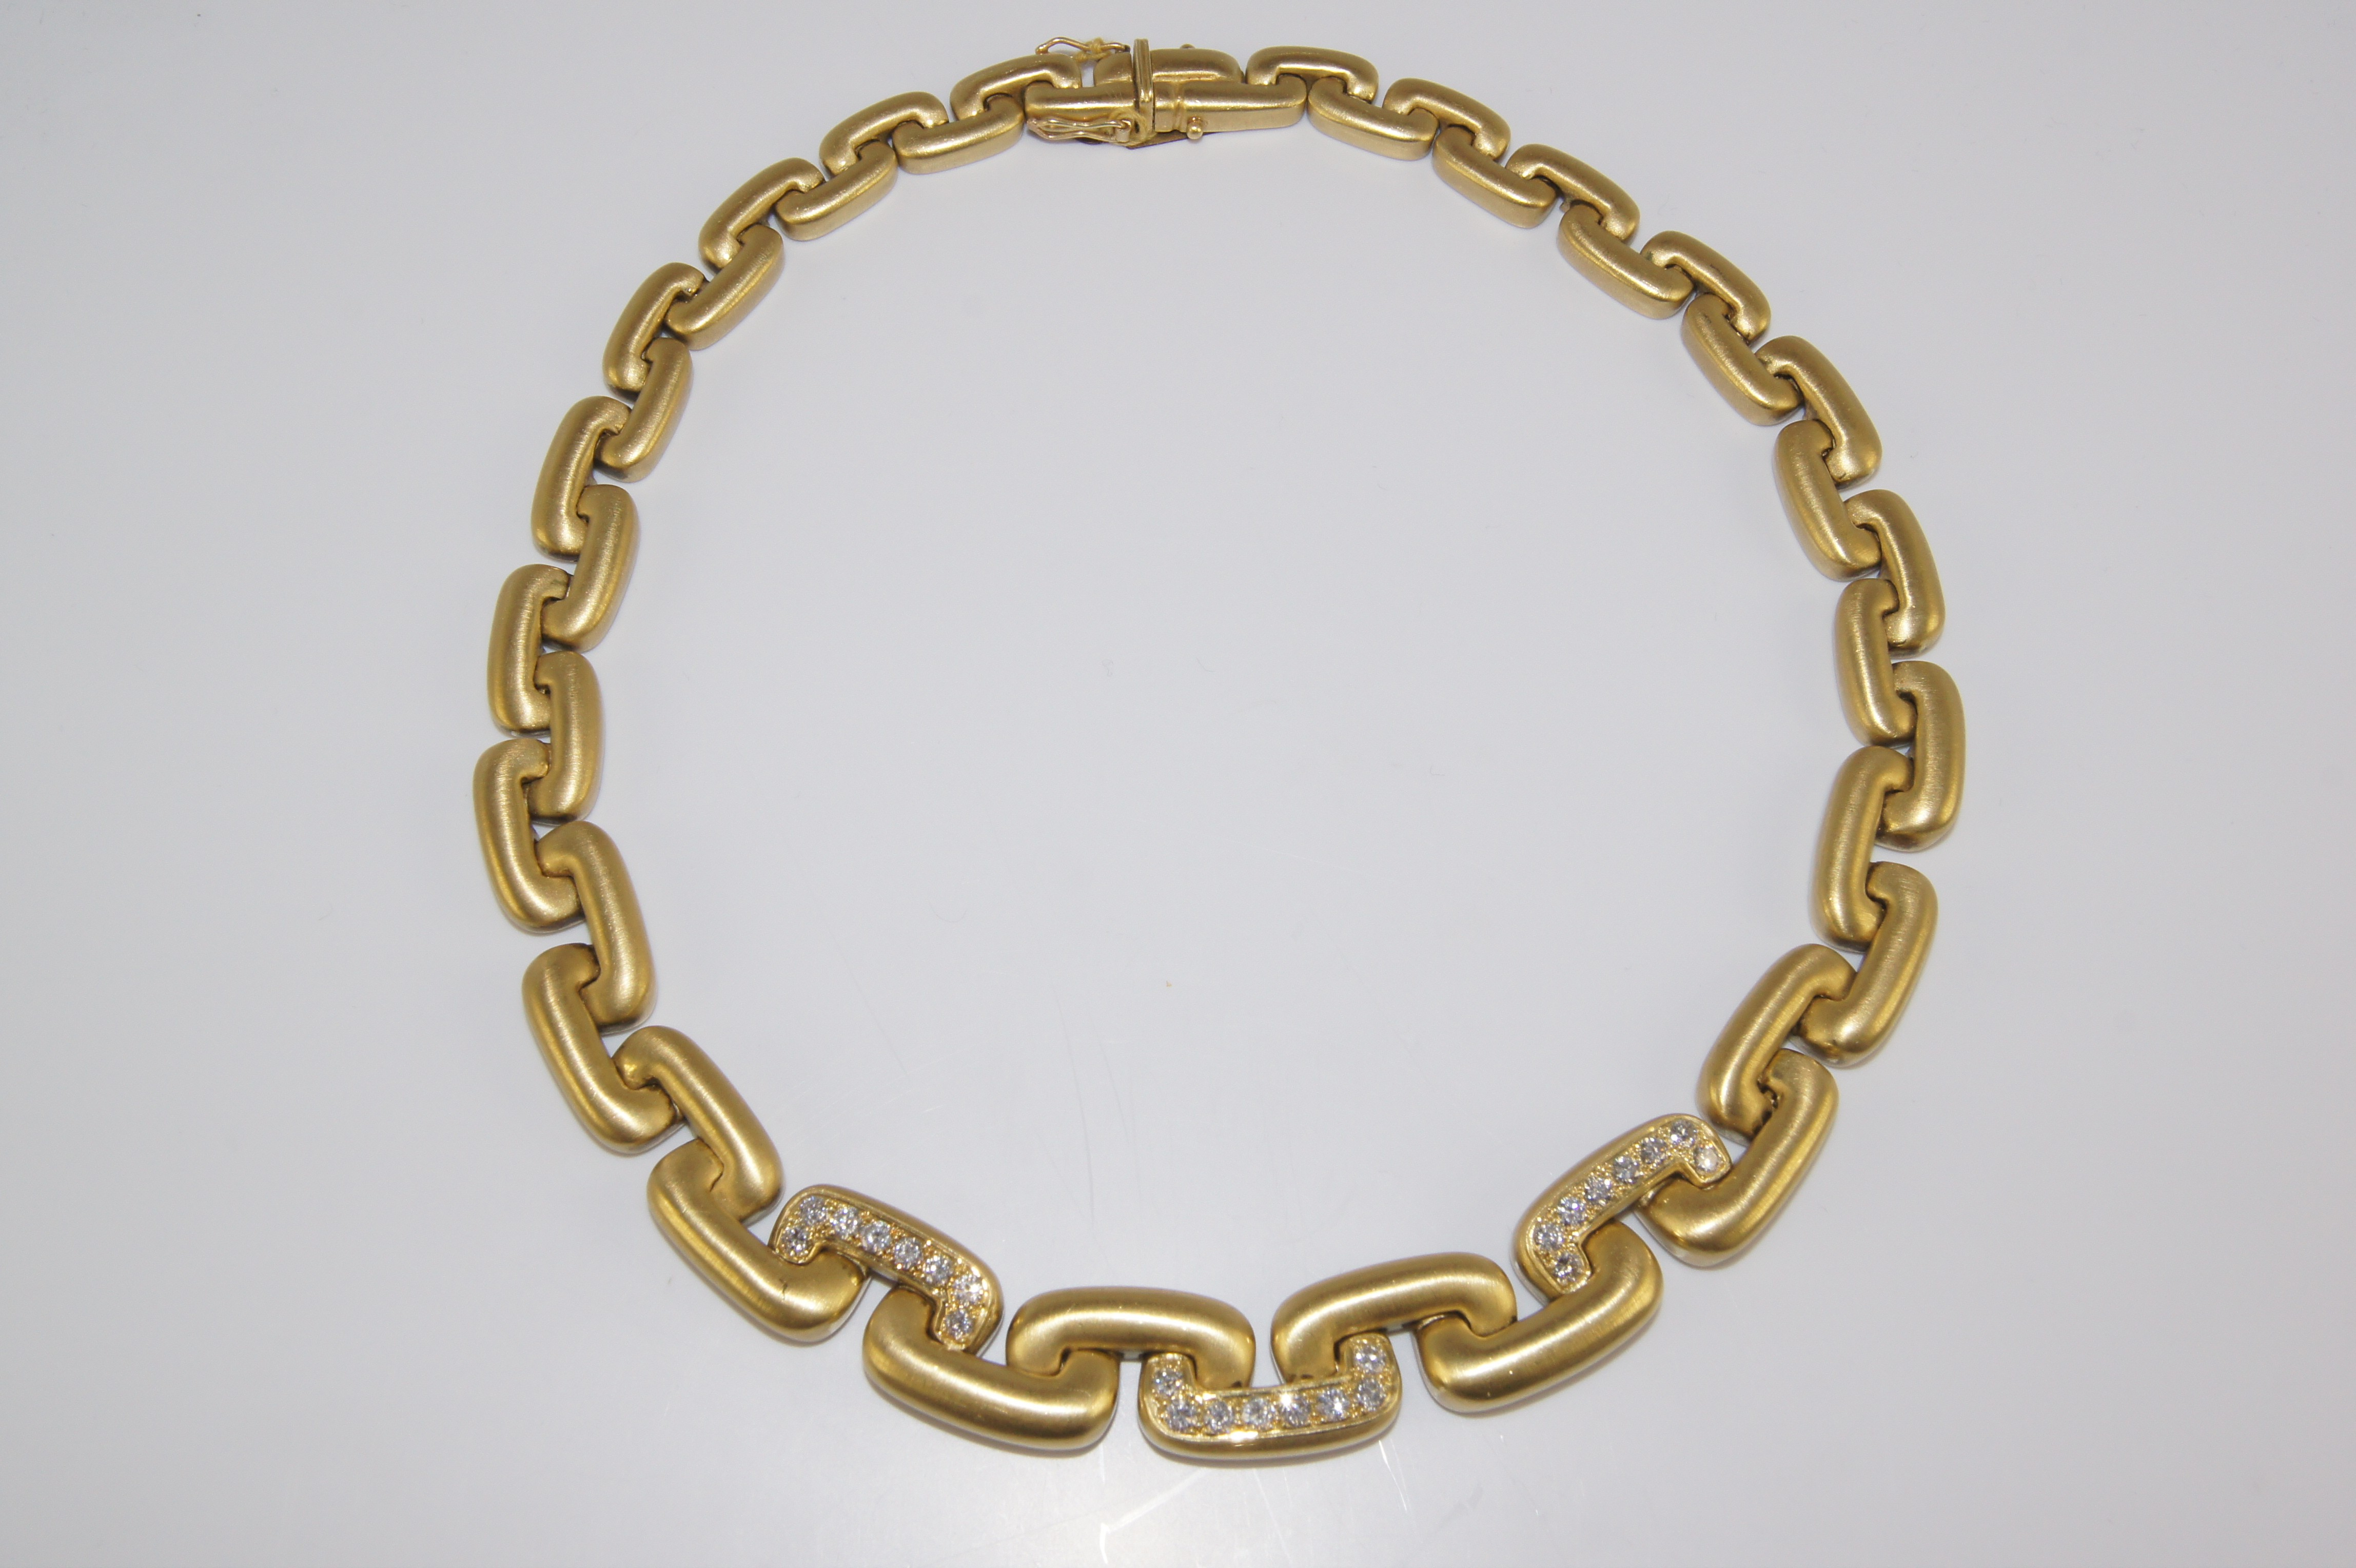 18 karat diamond link necklace.